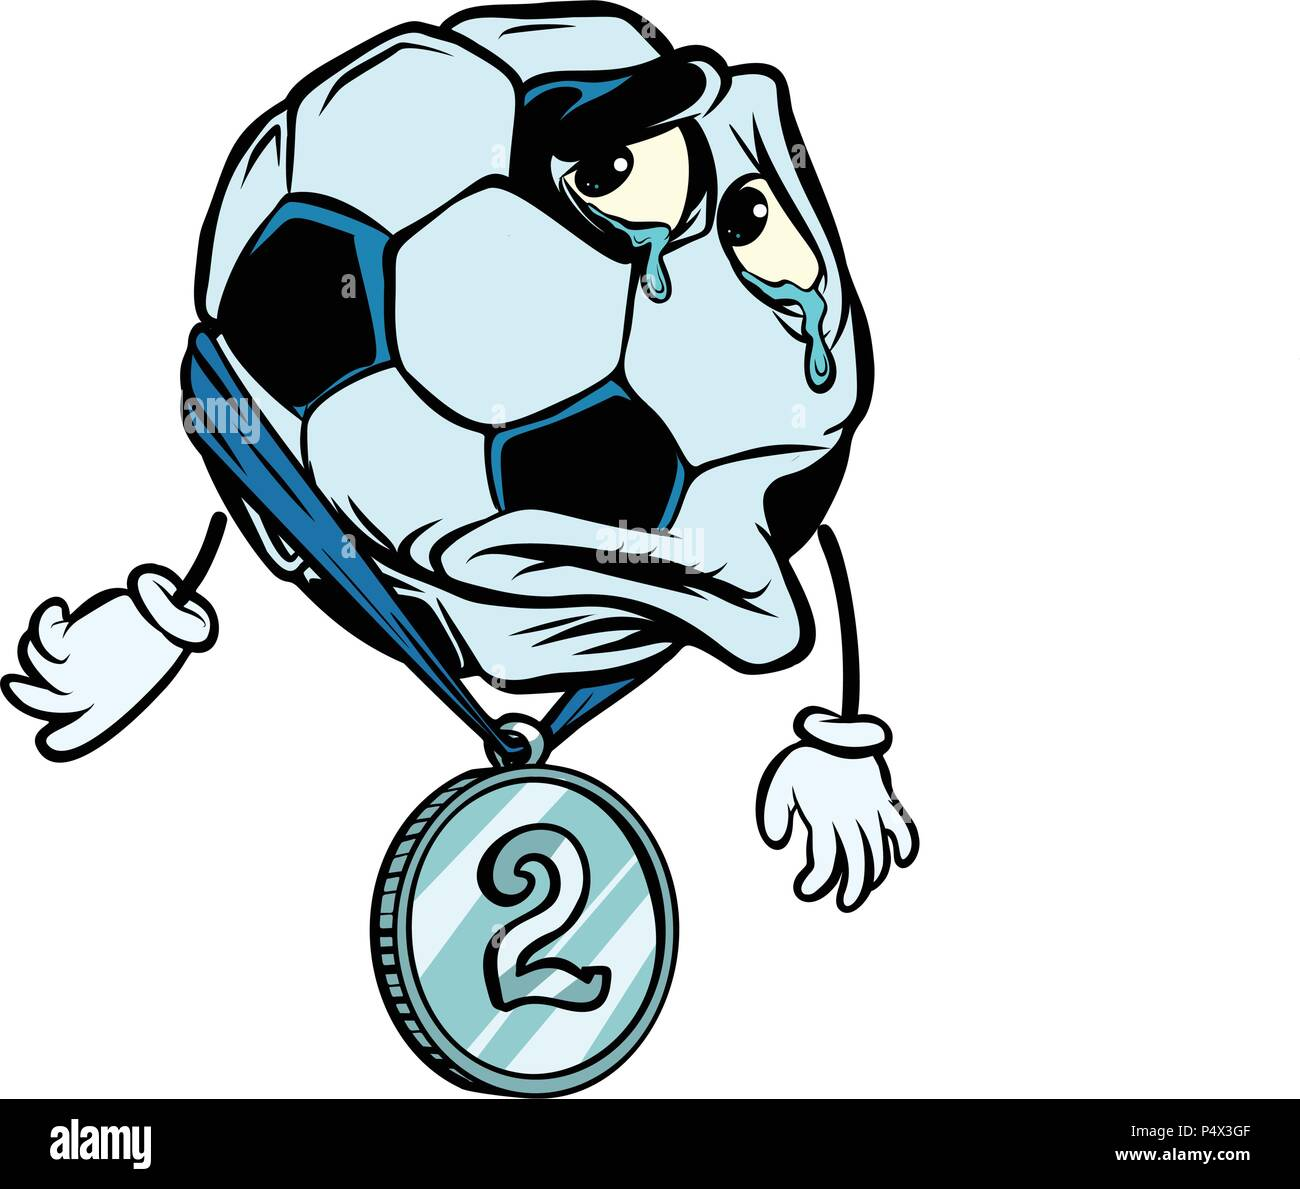 Failure second place silver medal. Character soccer ball footbal - Stock Image